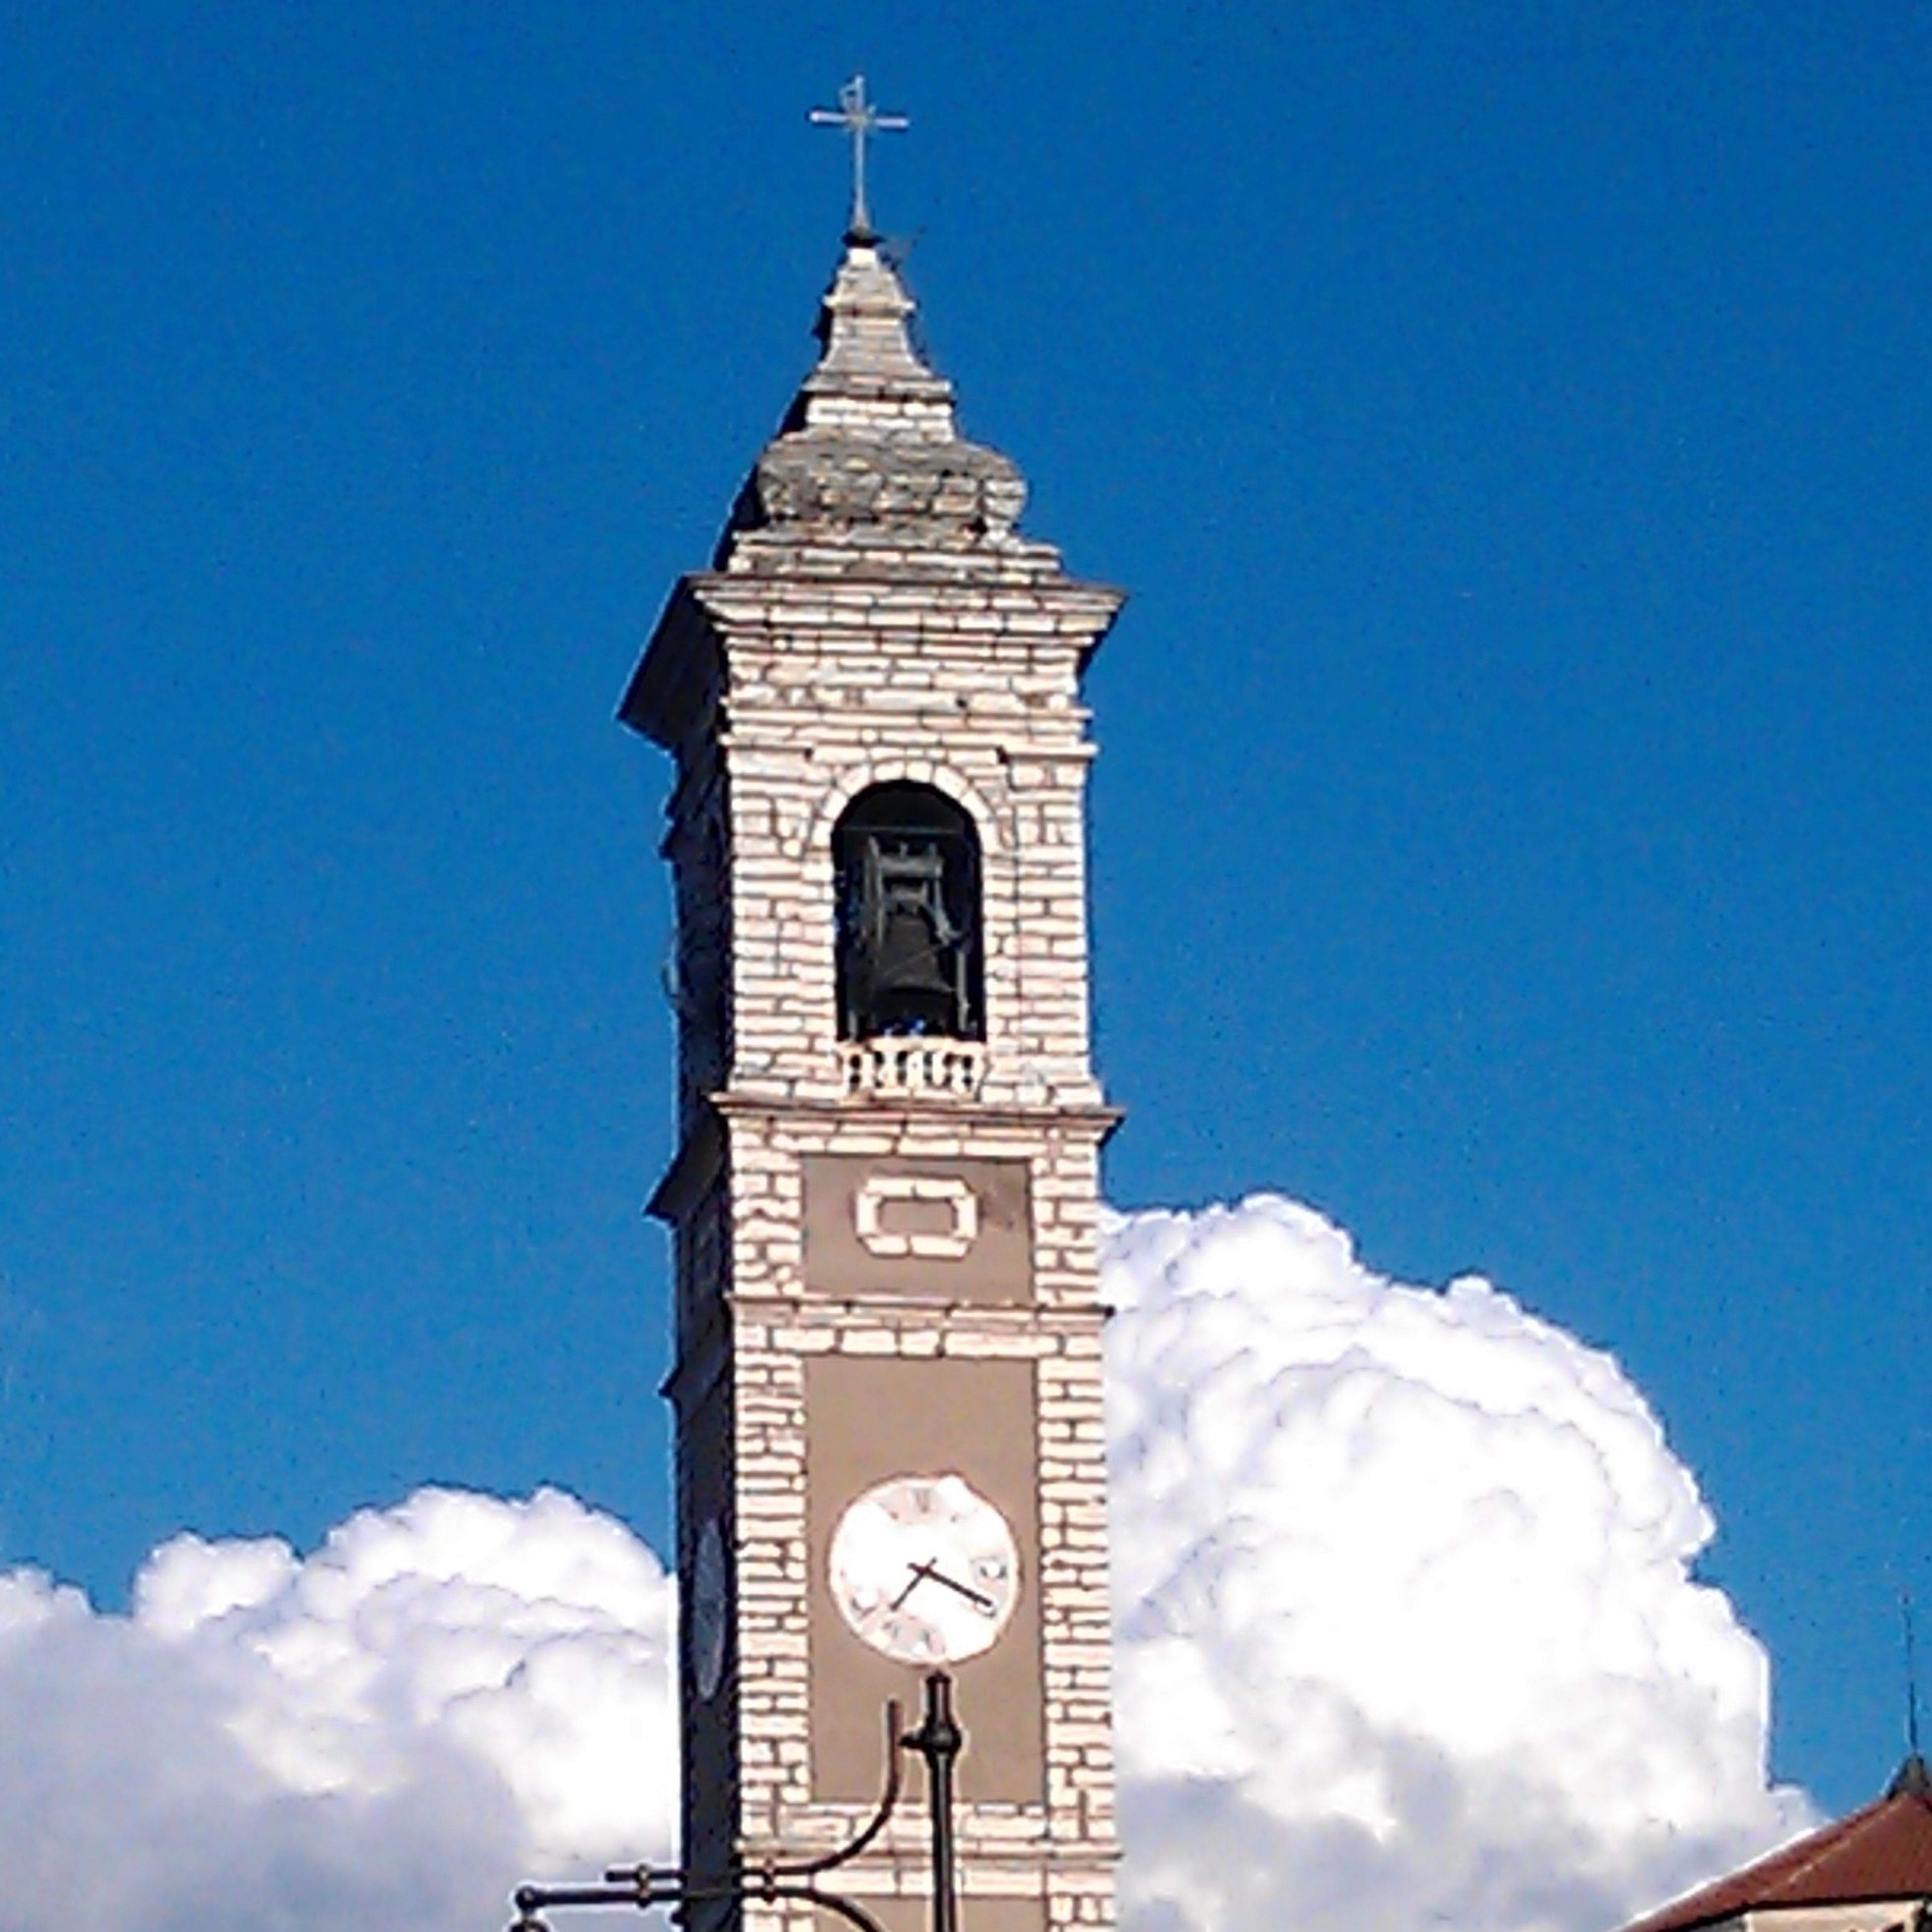 , Cloudporn , Check This Out Capriolo Italy ' Church